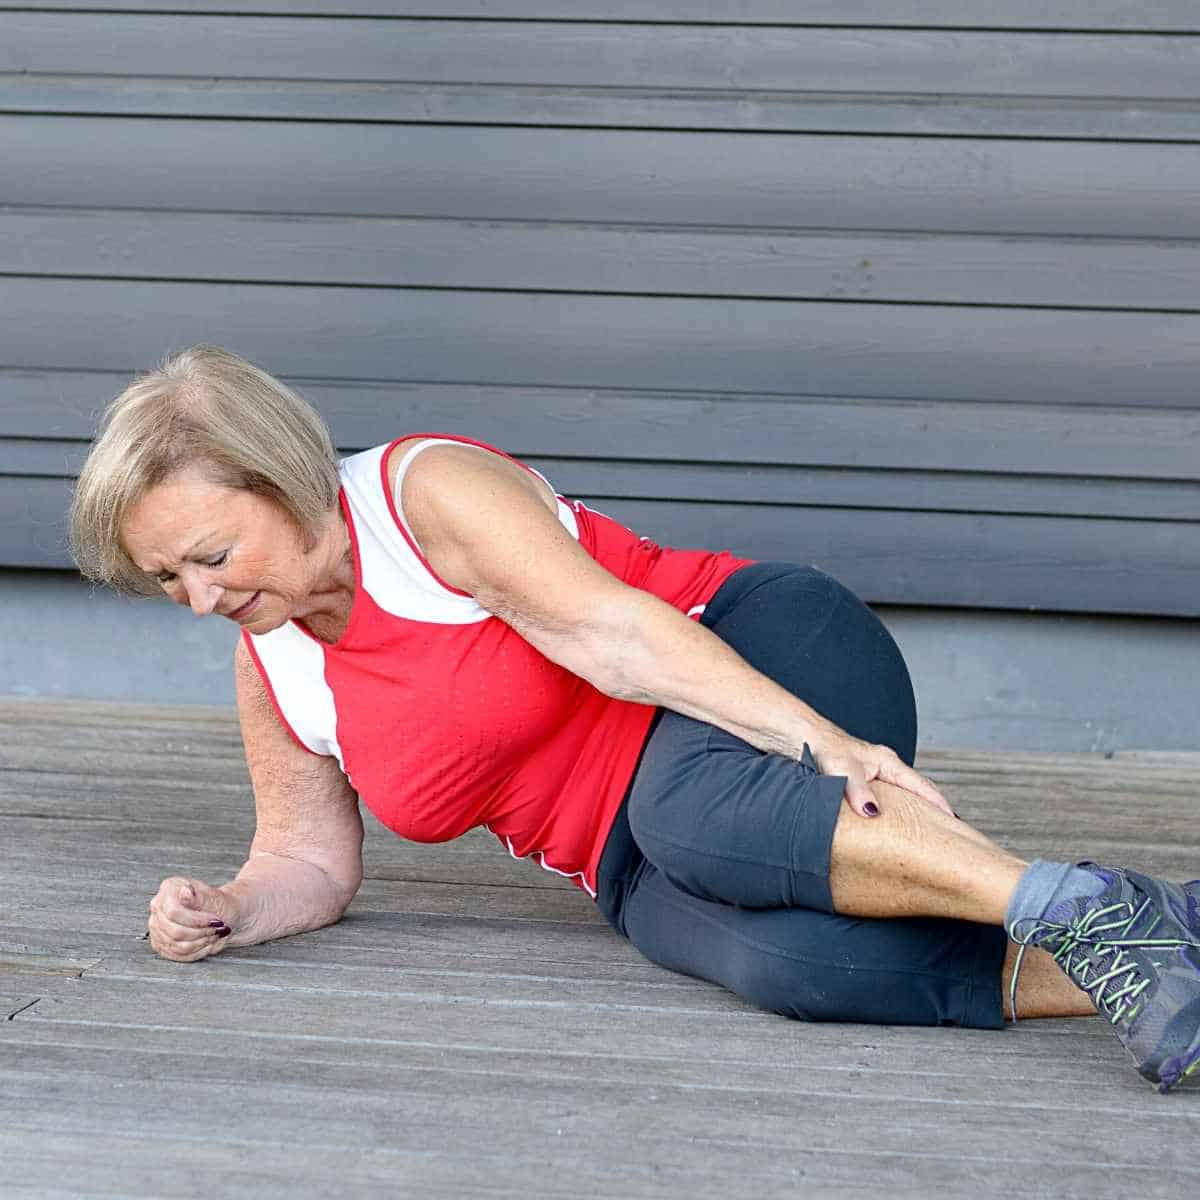 old lady with sore muscles - How to Fix Whole Body Aches on Keto: Advice from a Nutritionist